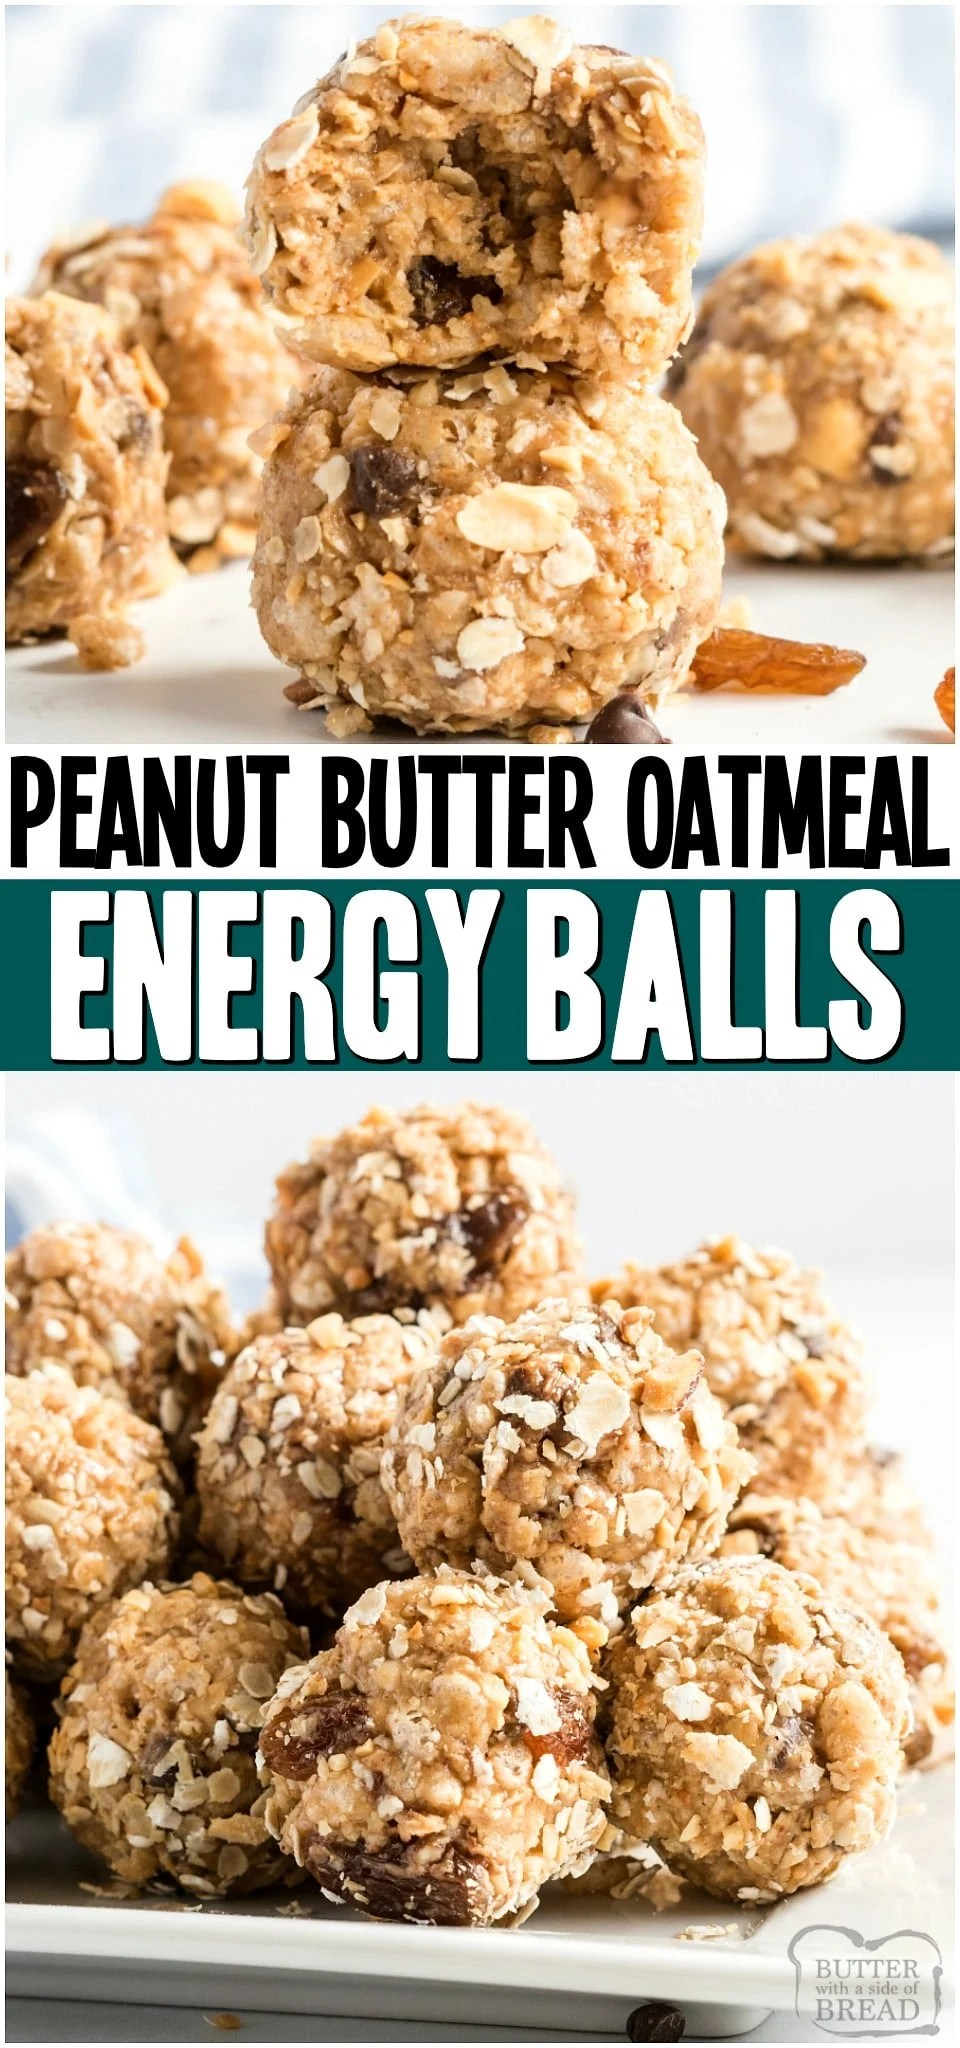 Peanut Butter Oatmeal Balls are a simple, no-bake recipe with peanut butter, oatmeal, honey, raisins and chocolate chips. Perfect homemade energy bites for breakfast, lunch or snack that everyone loves!#energy #peanutbutter #oatmeal #snacks #schoollunch #easyrecipe from BUTTER WITH A SIDE OF BREAD